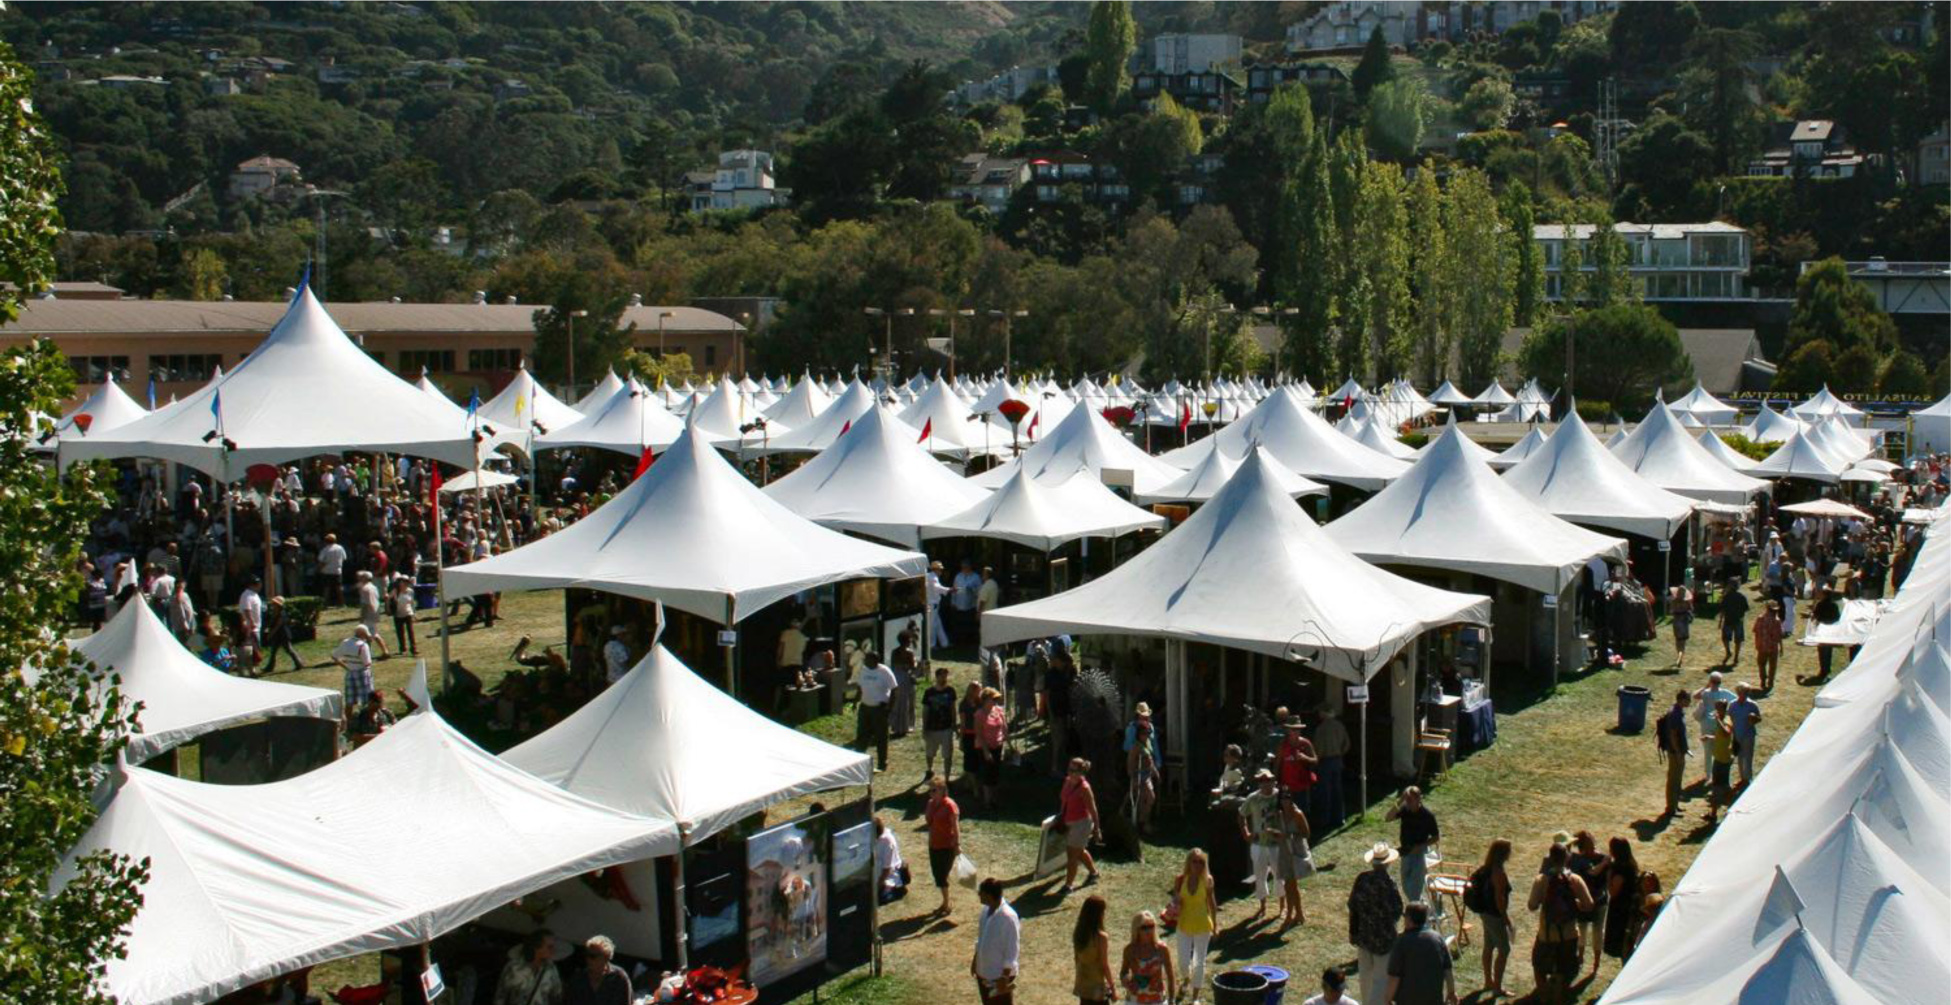 Insurance for Artists at Art Fairs